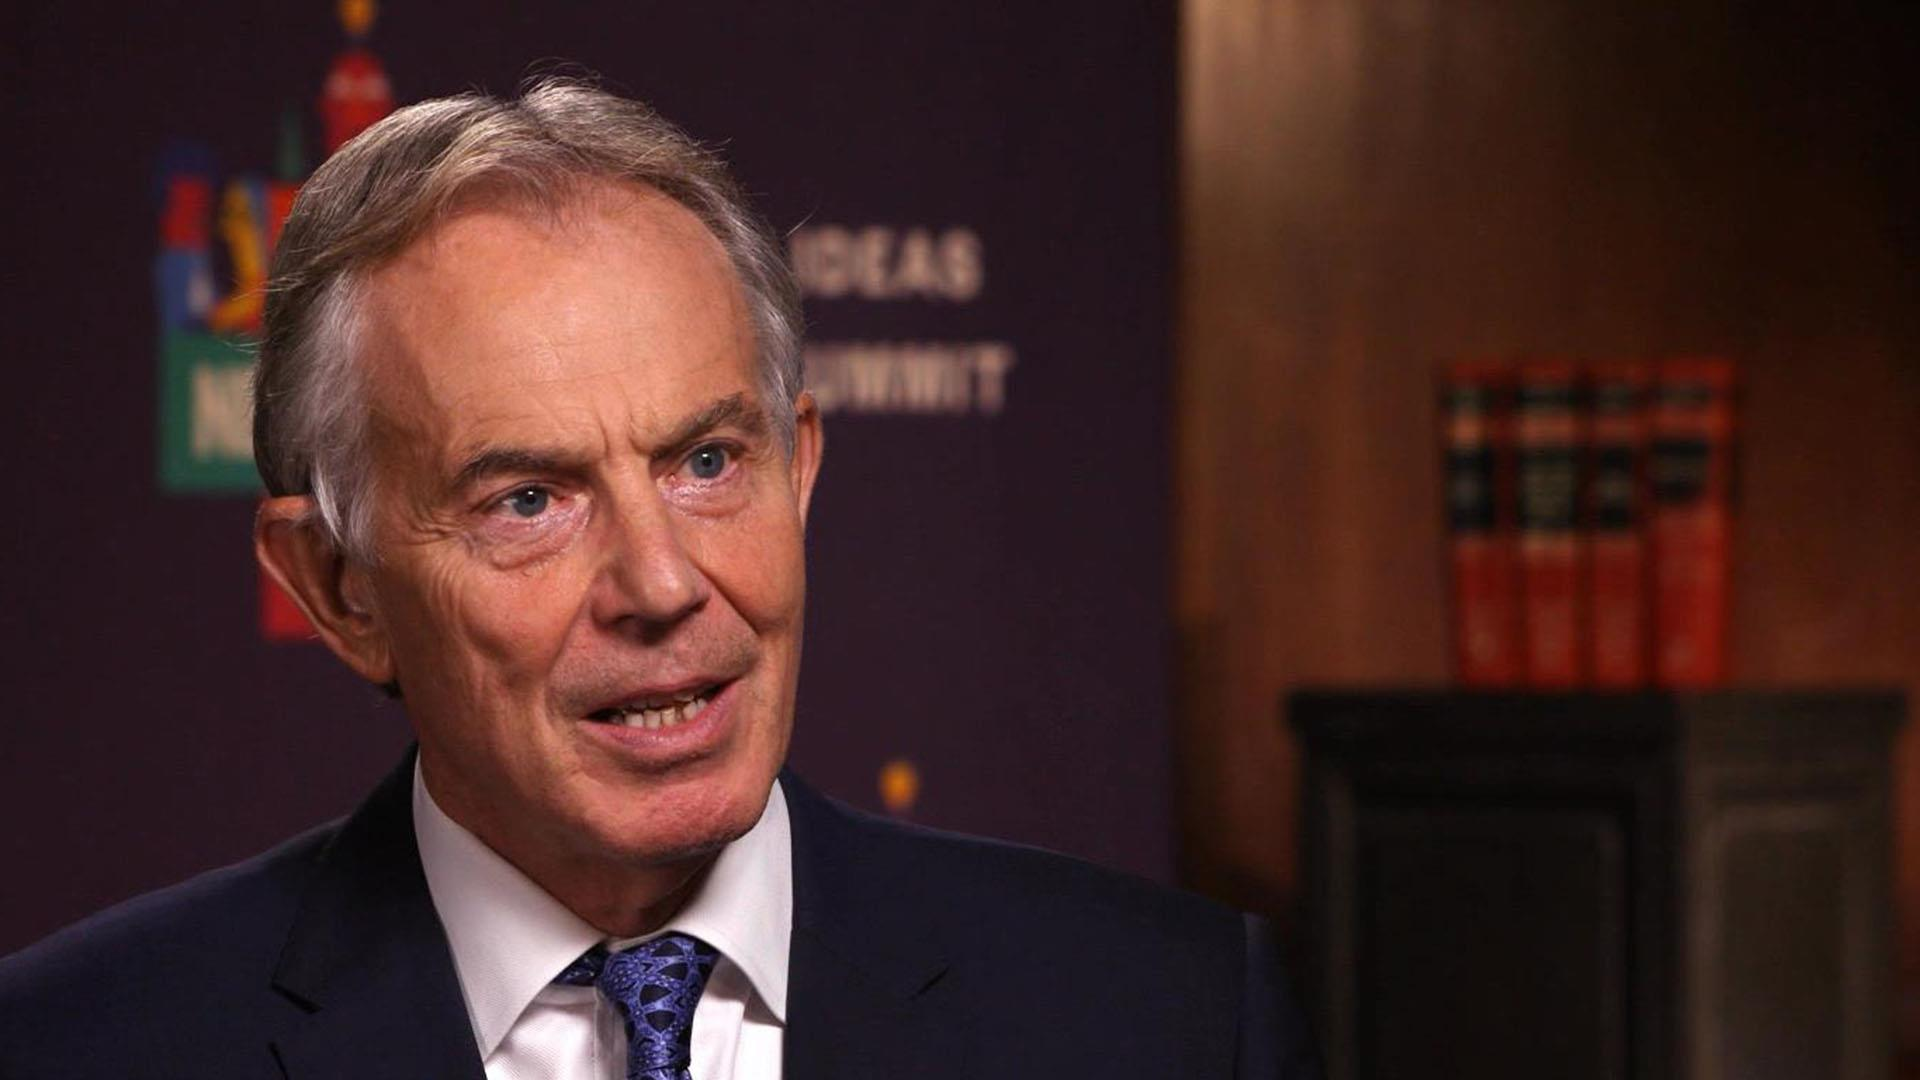 Fmr PM Tony Blair On Terror Attacks: 'You...